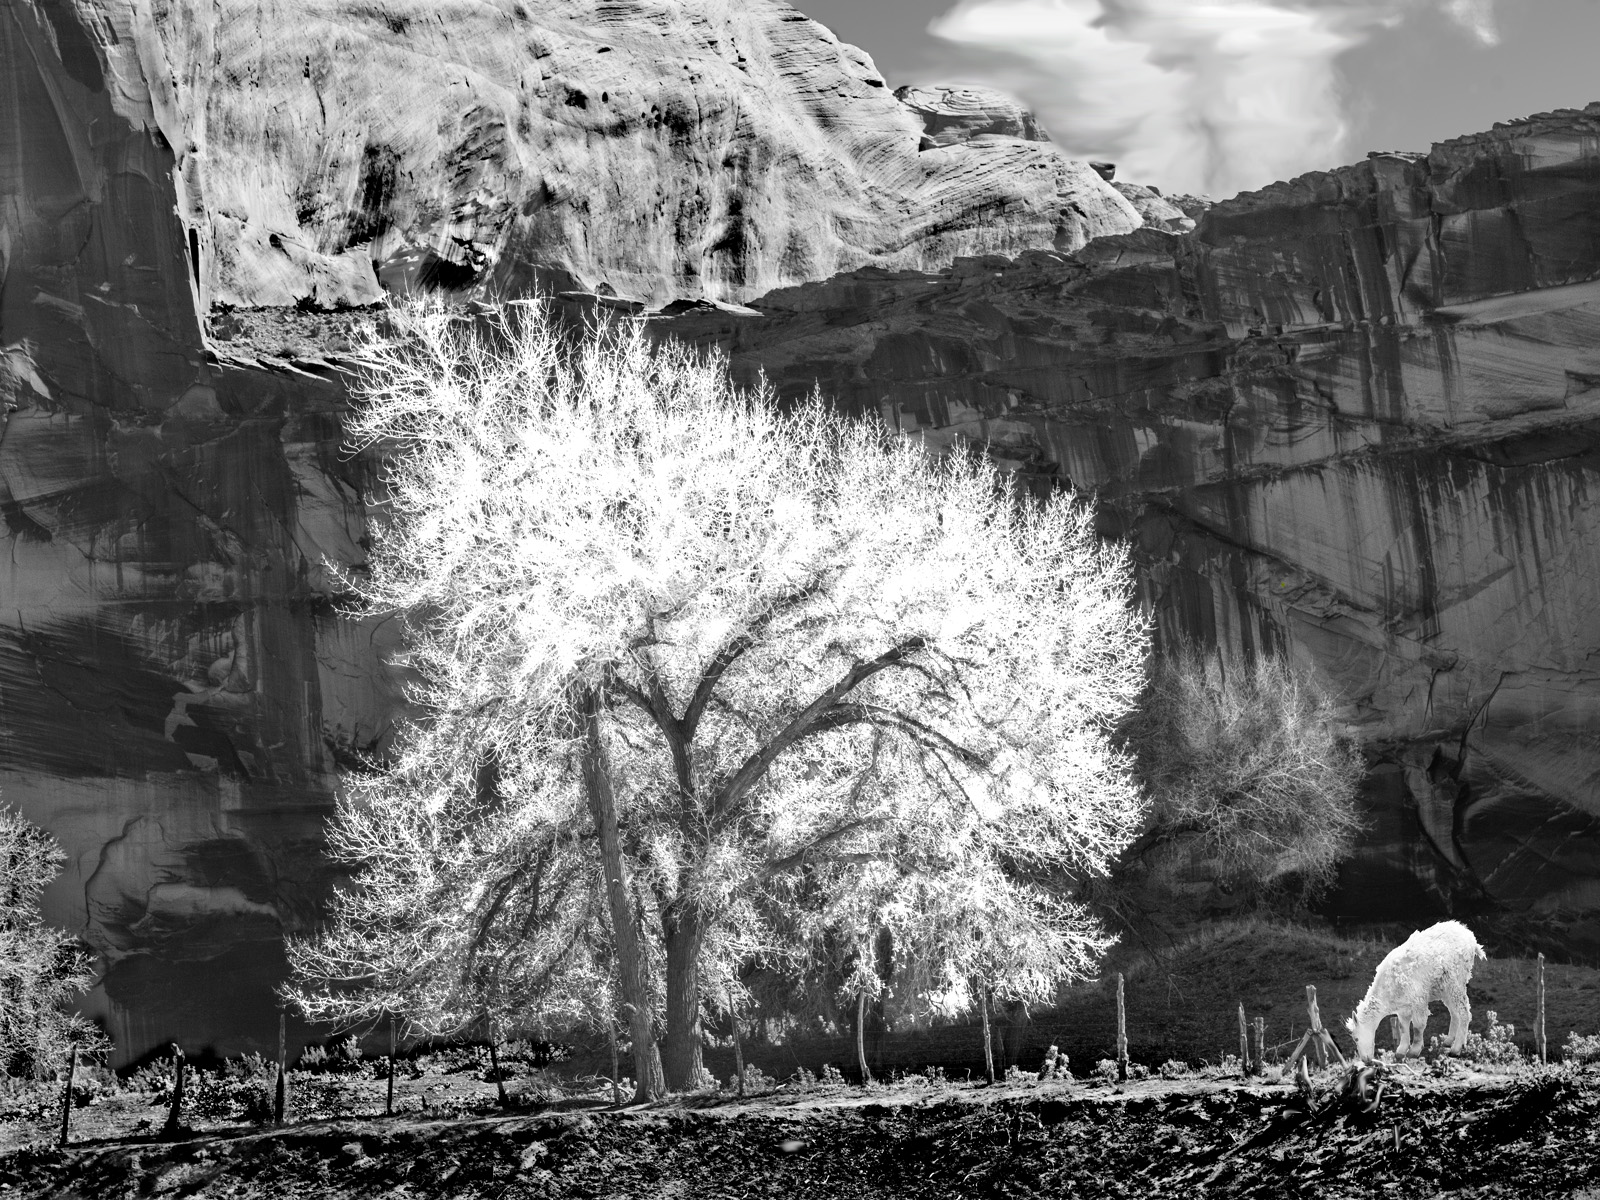 Ron Franklin_Gat in Canyon de Chelly_Non